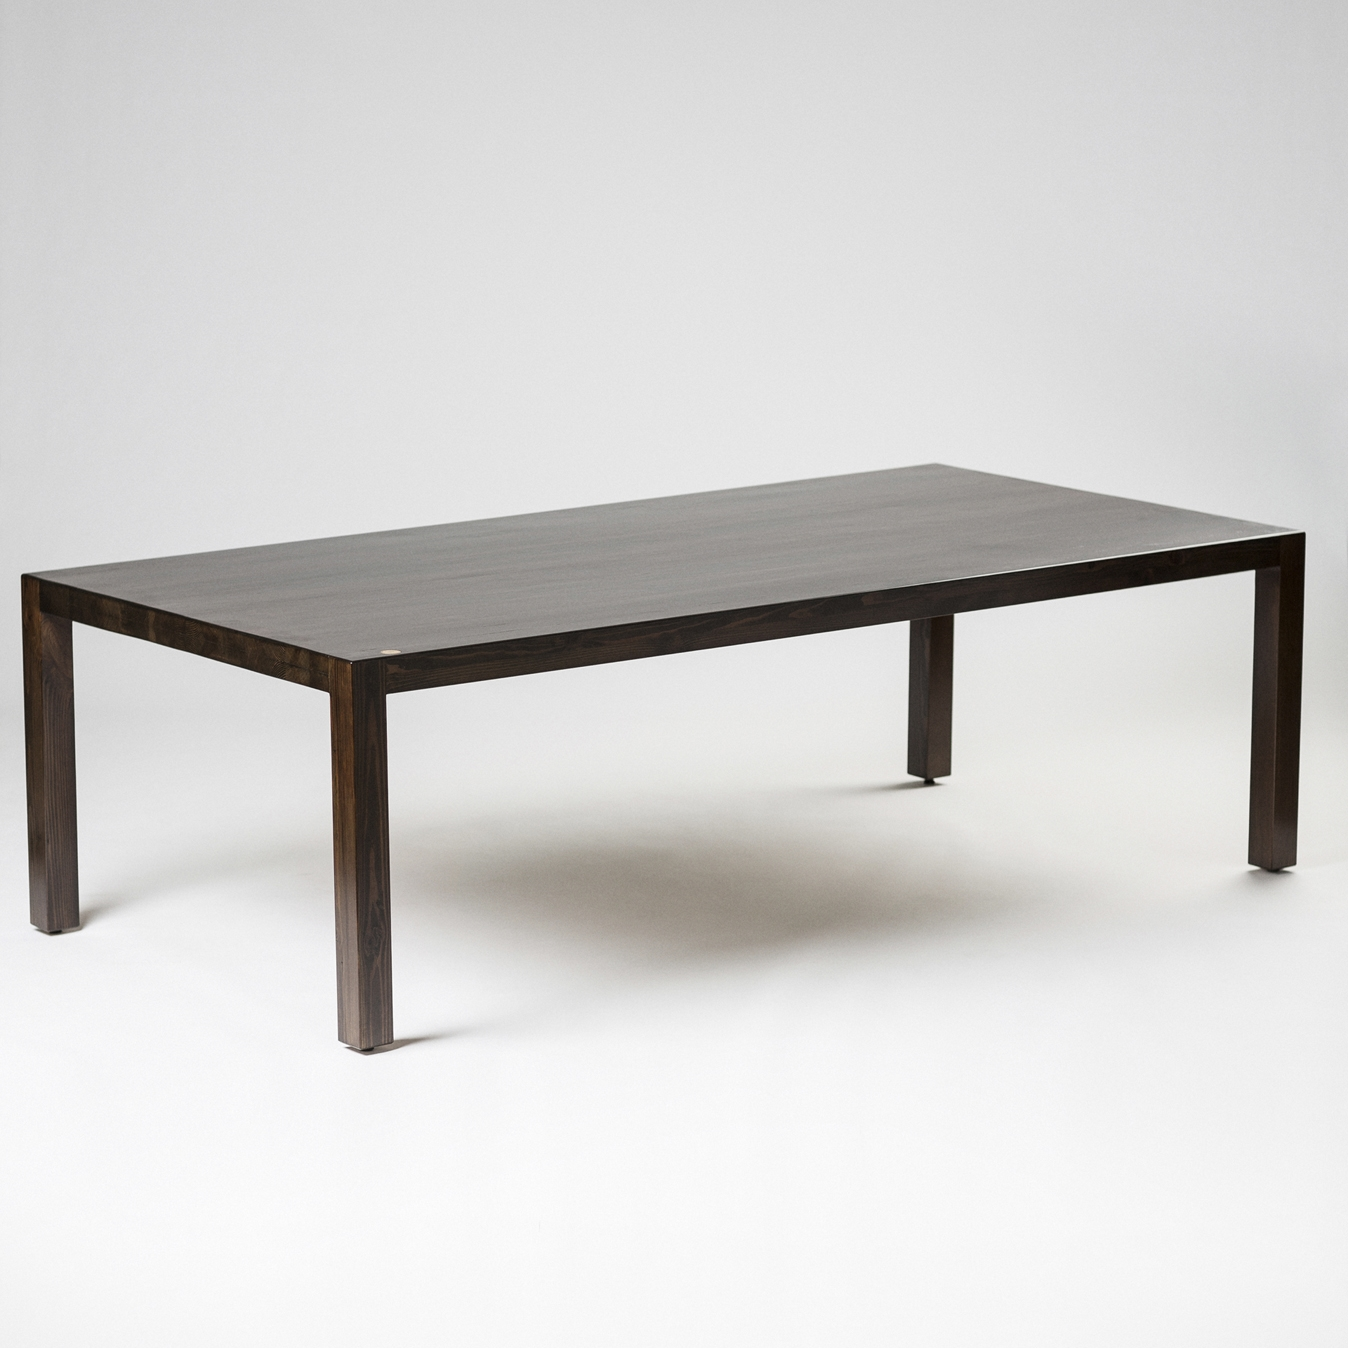 HAYMARKET DINING TABLE (10 SETTING)